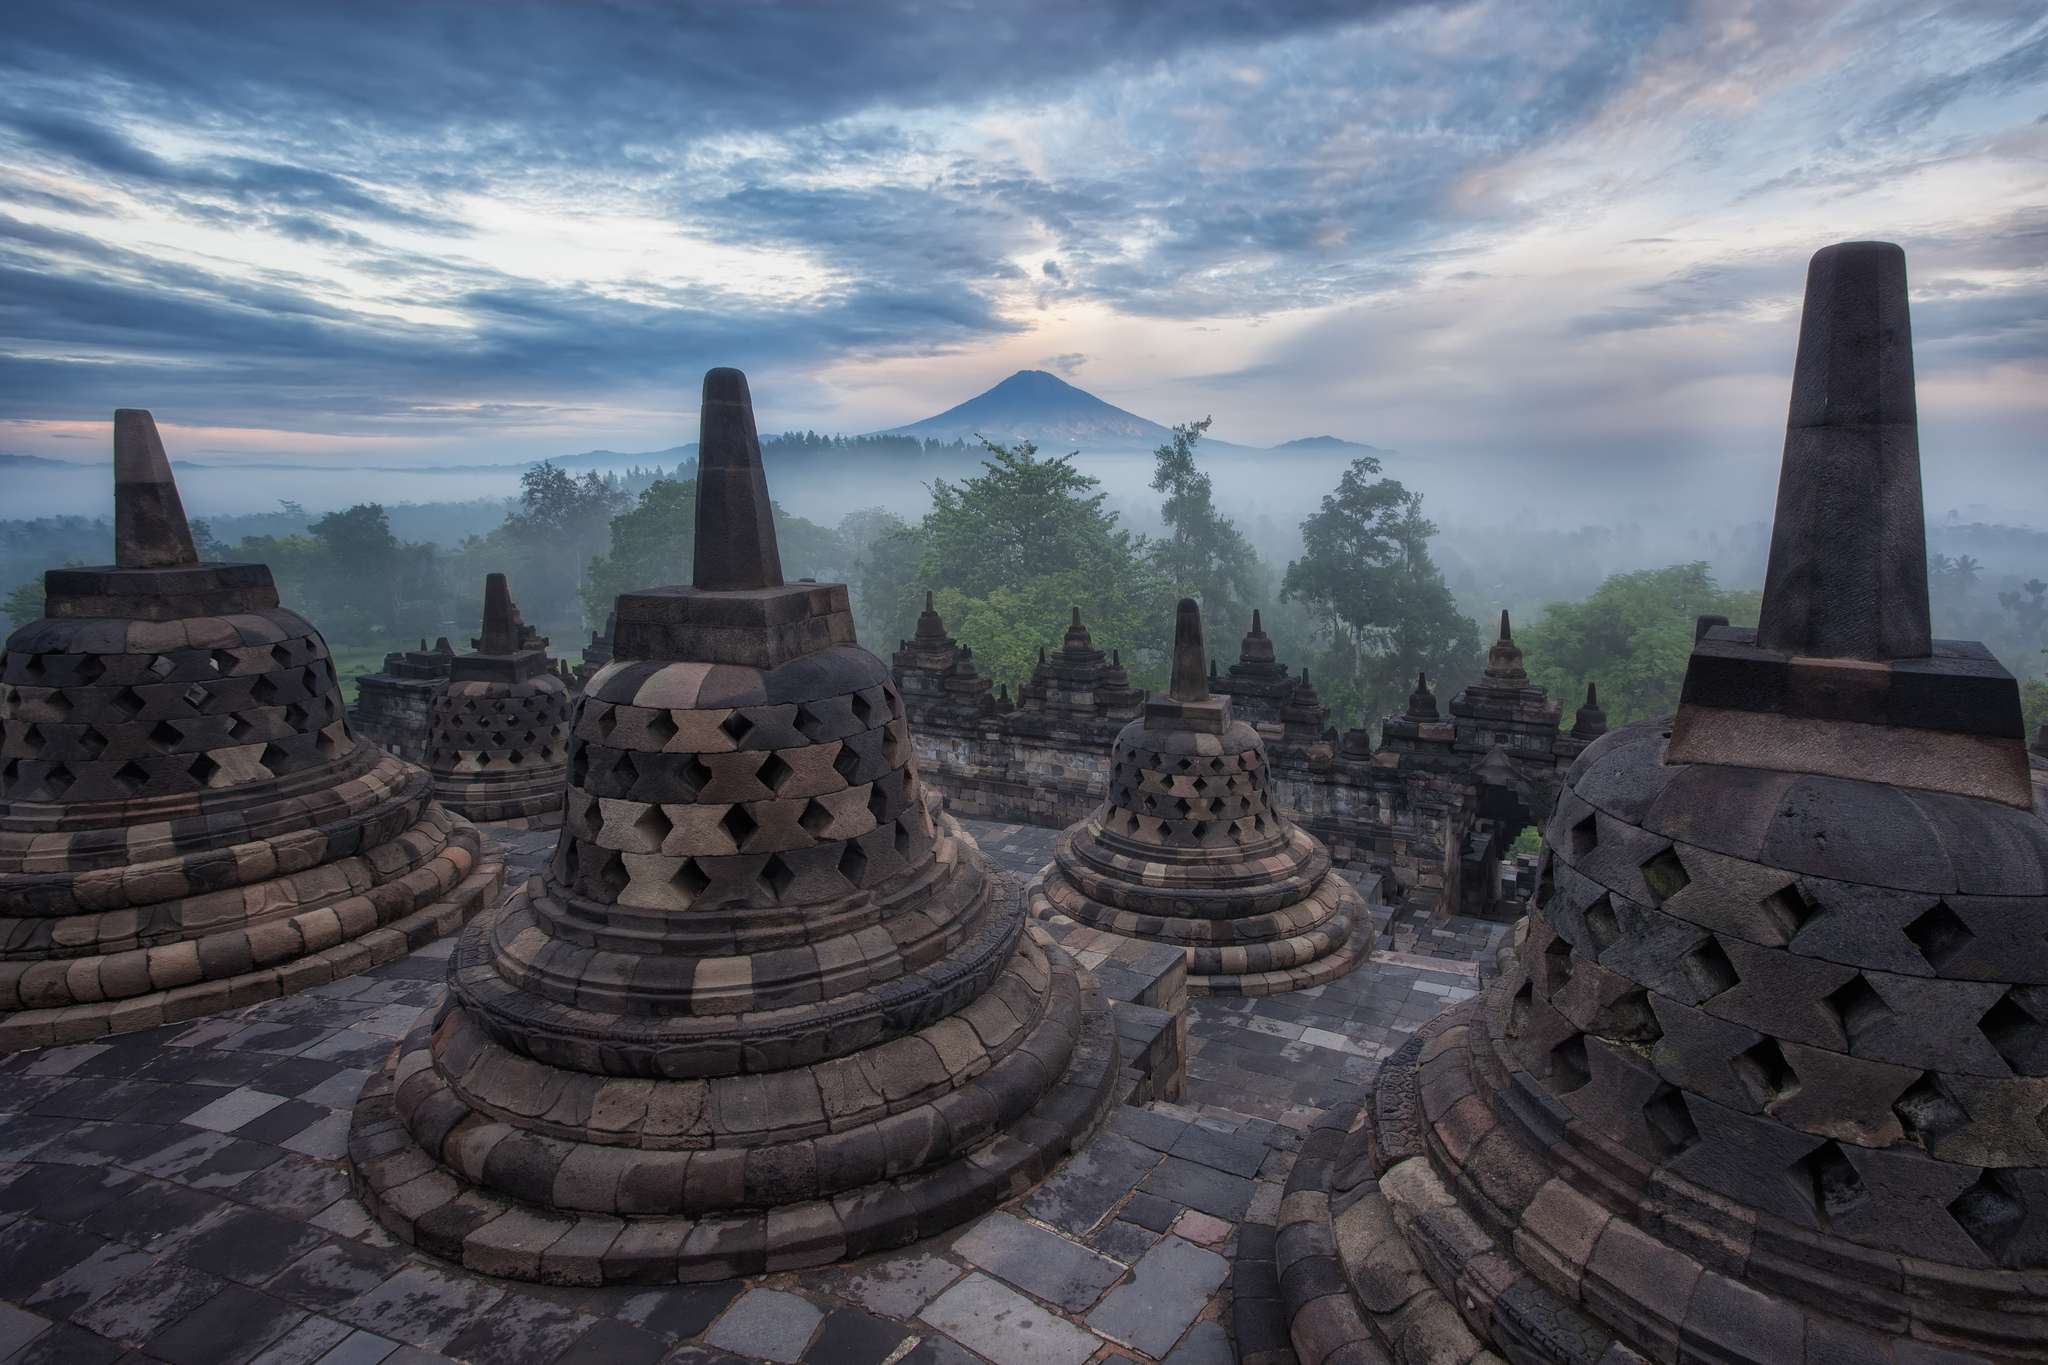 Borobudur Buddhist Temple In Magelang Central Java Indonesia Full